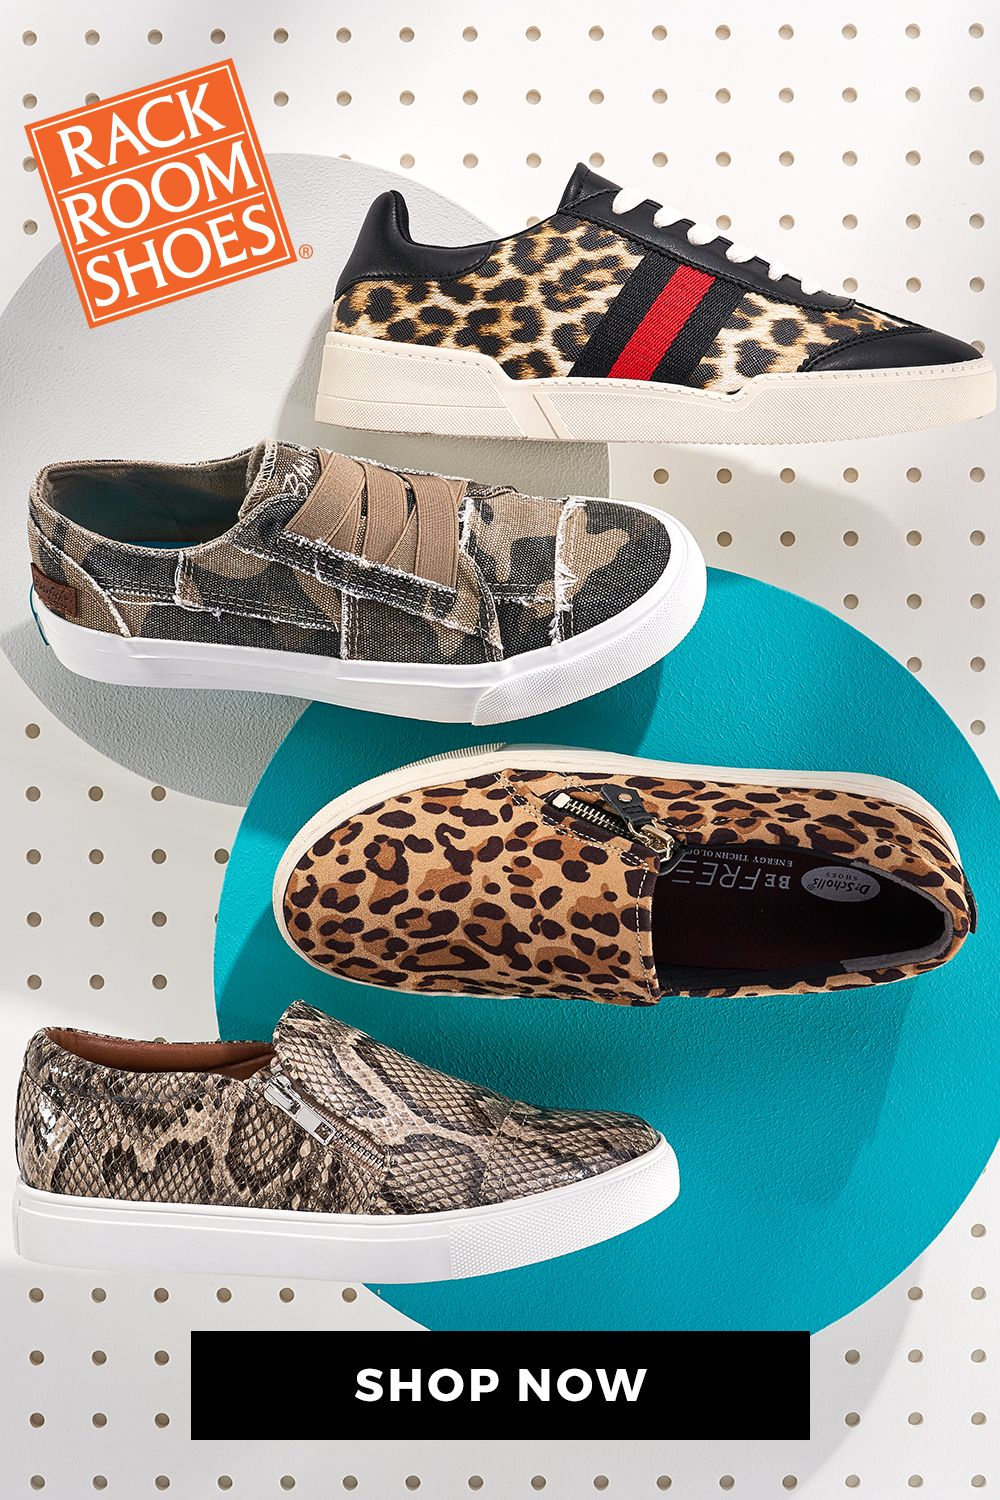 Rack Room Shoes: Sandals, Sneakers, Boots & Accessories